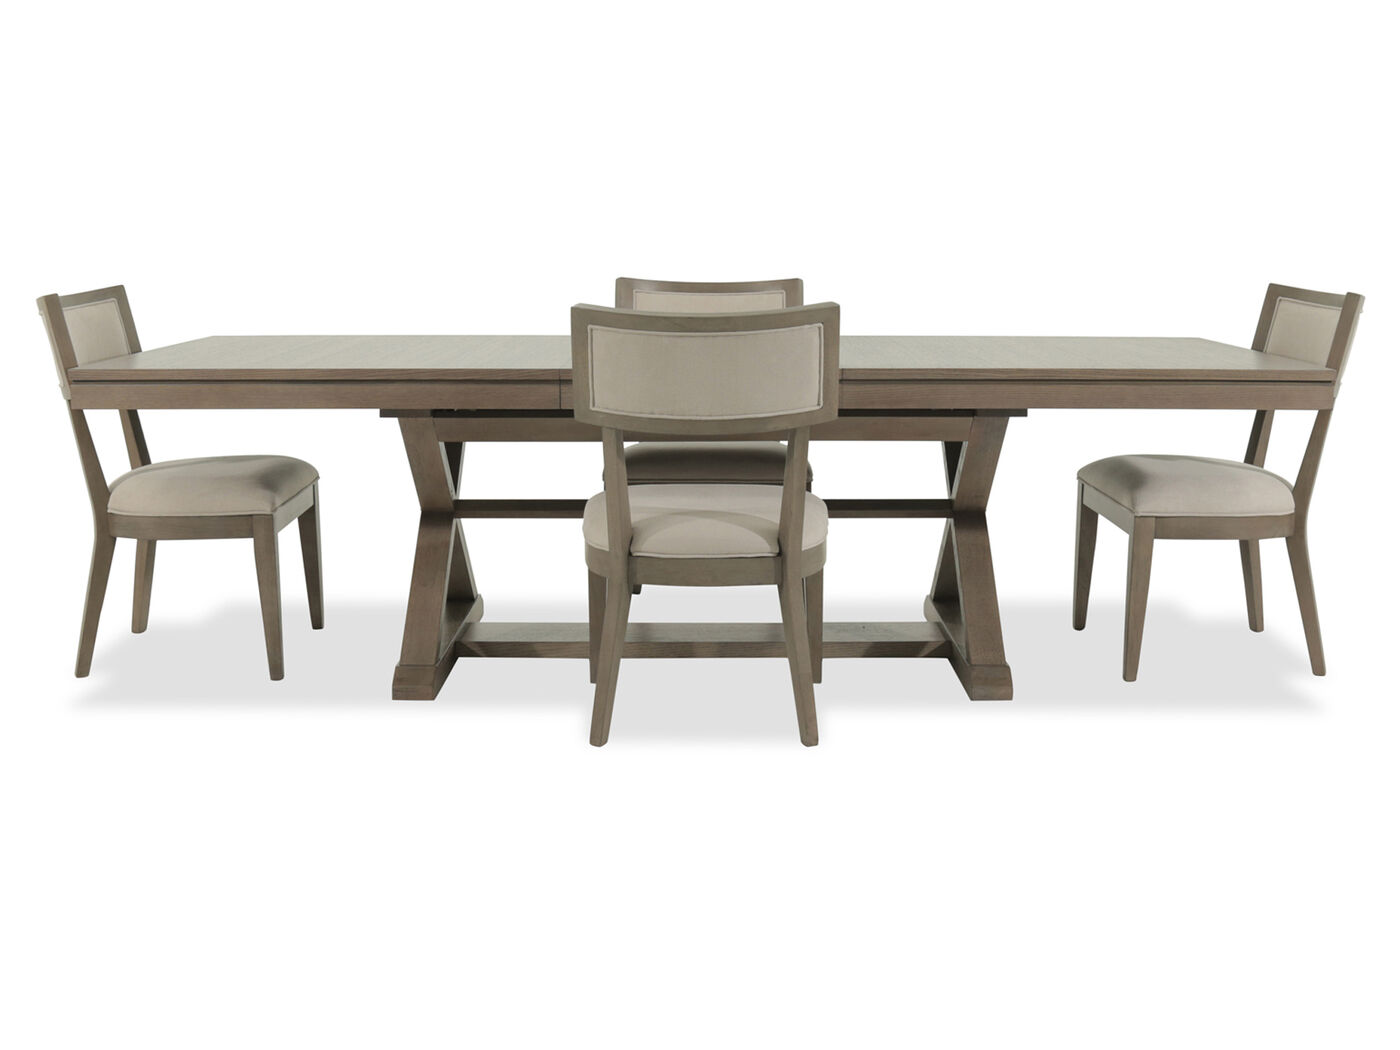 Emejing Mathis Brothers Dining Room Sets Pictures Home  : LCF 60005PC01 from degnerfordelegate.com size 1333 x 1000 jpeg 64kB